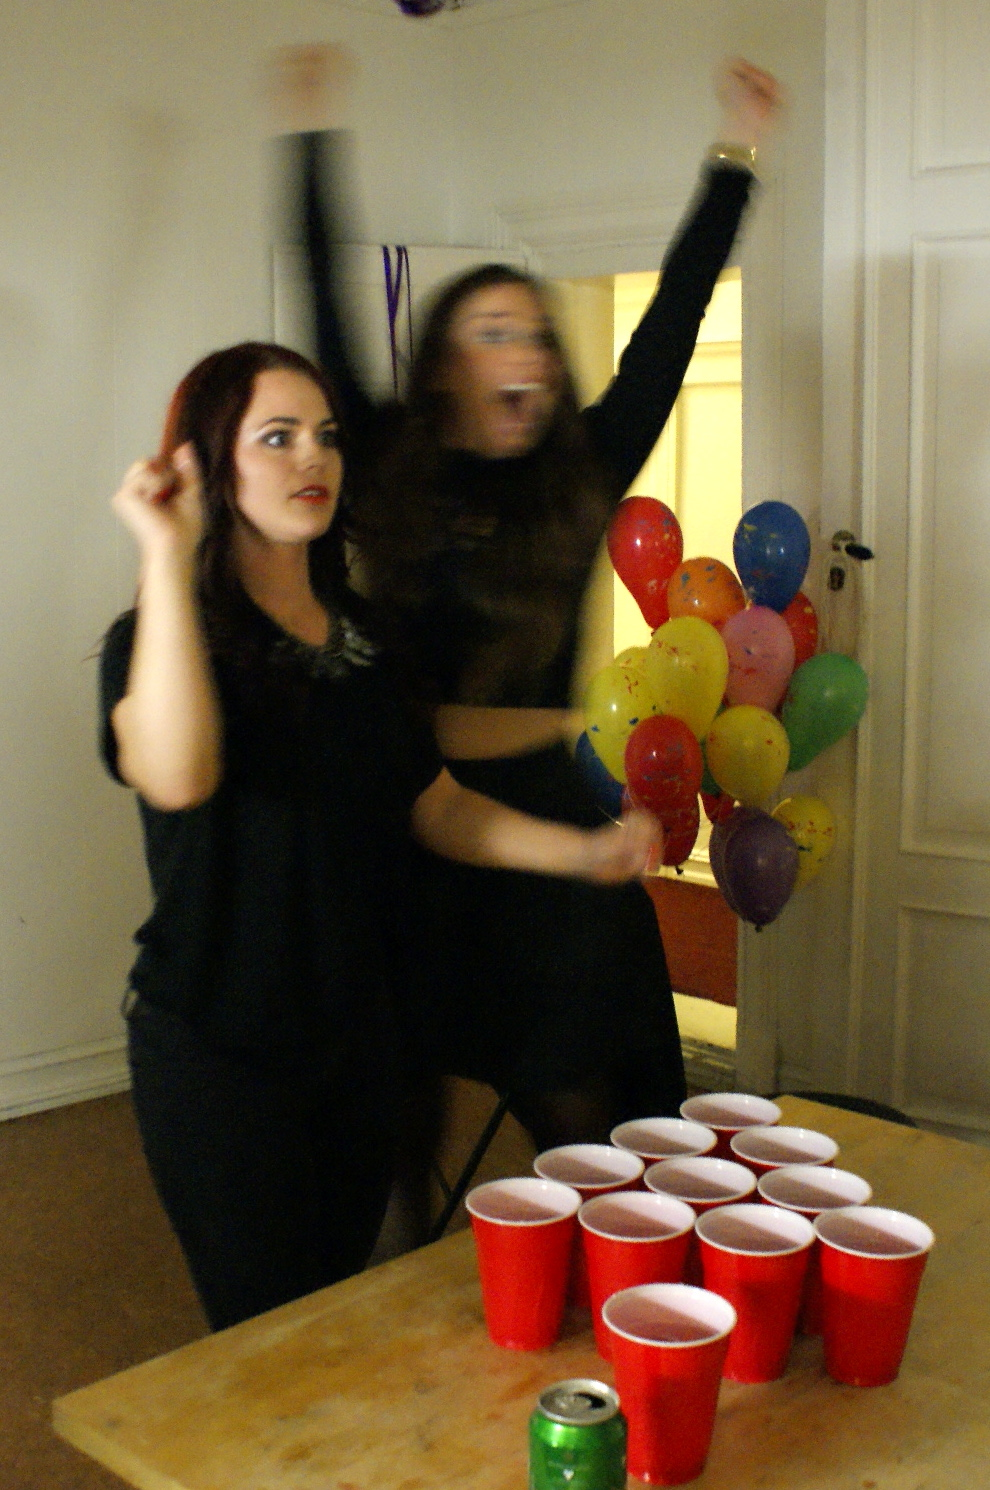 Stunned beer pong winners